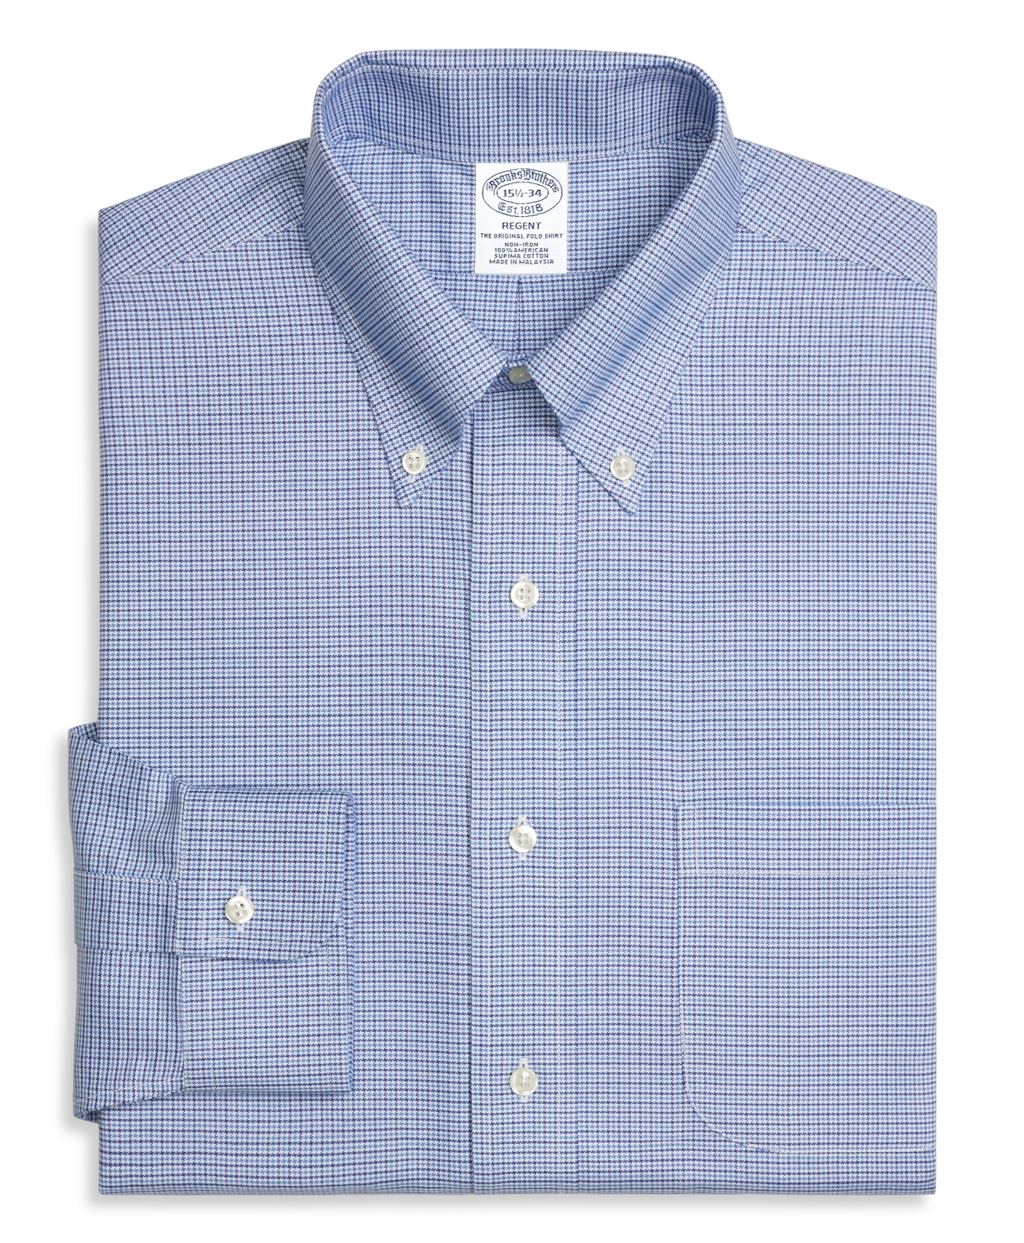 Brooks brothers non iron milano fit brookscool for Brooks brothers non iron shirts review